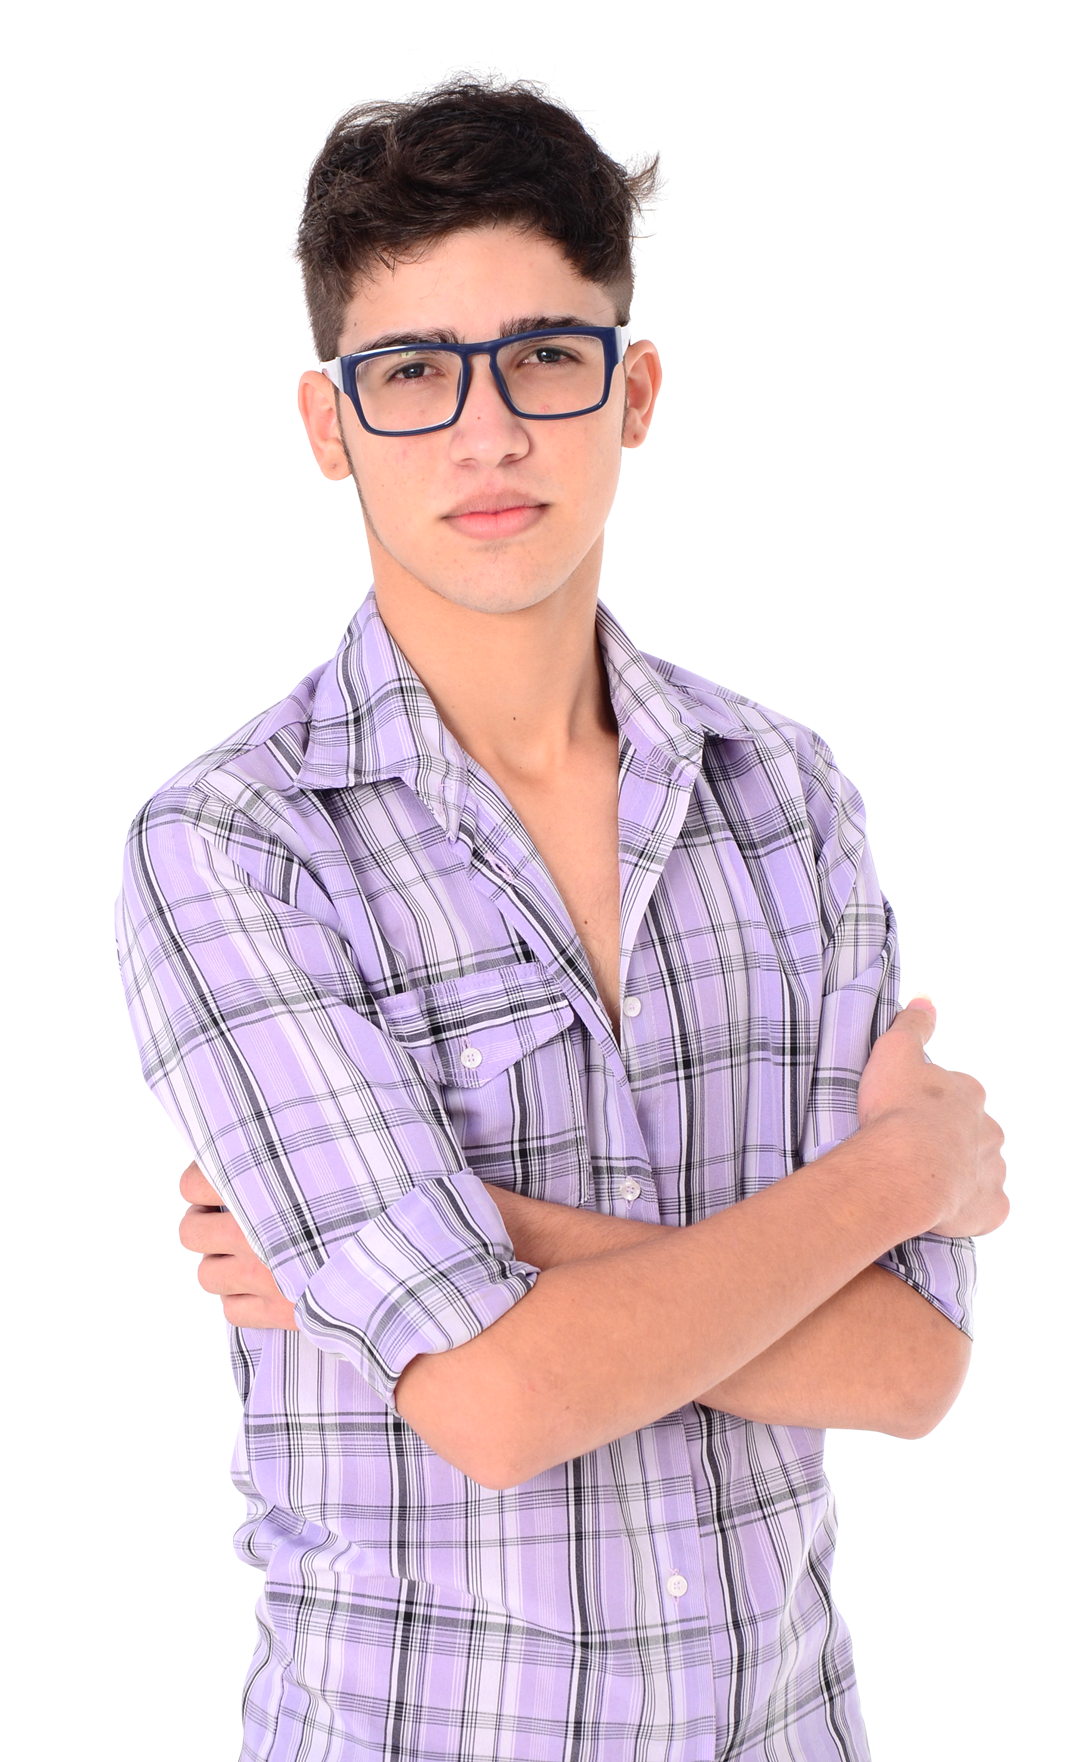 man png transparent images png only #12319